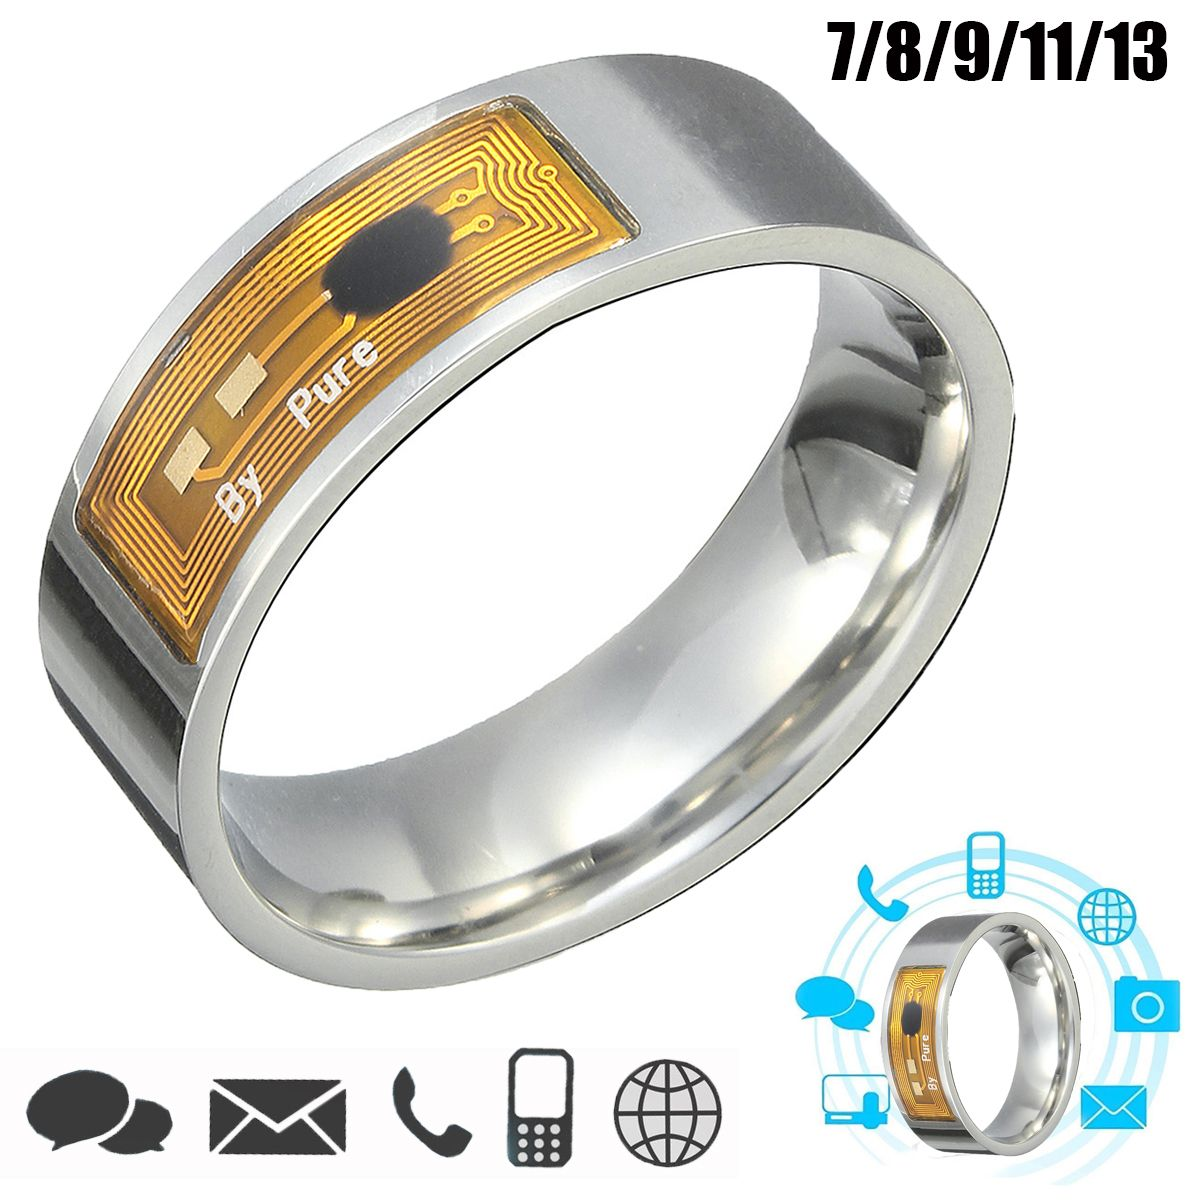 7891113 Size NFC Tag Smart Magic Finger Ring for Samsung Android